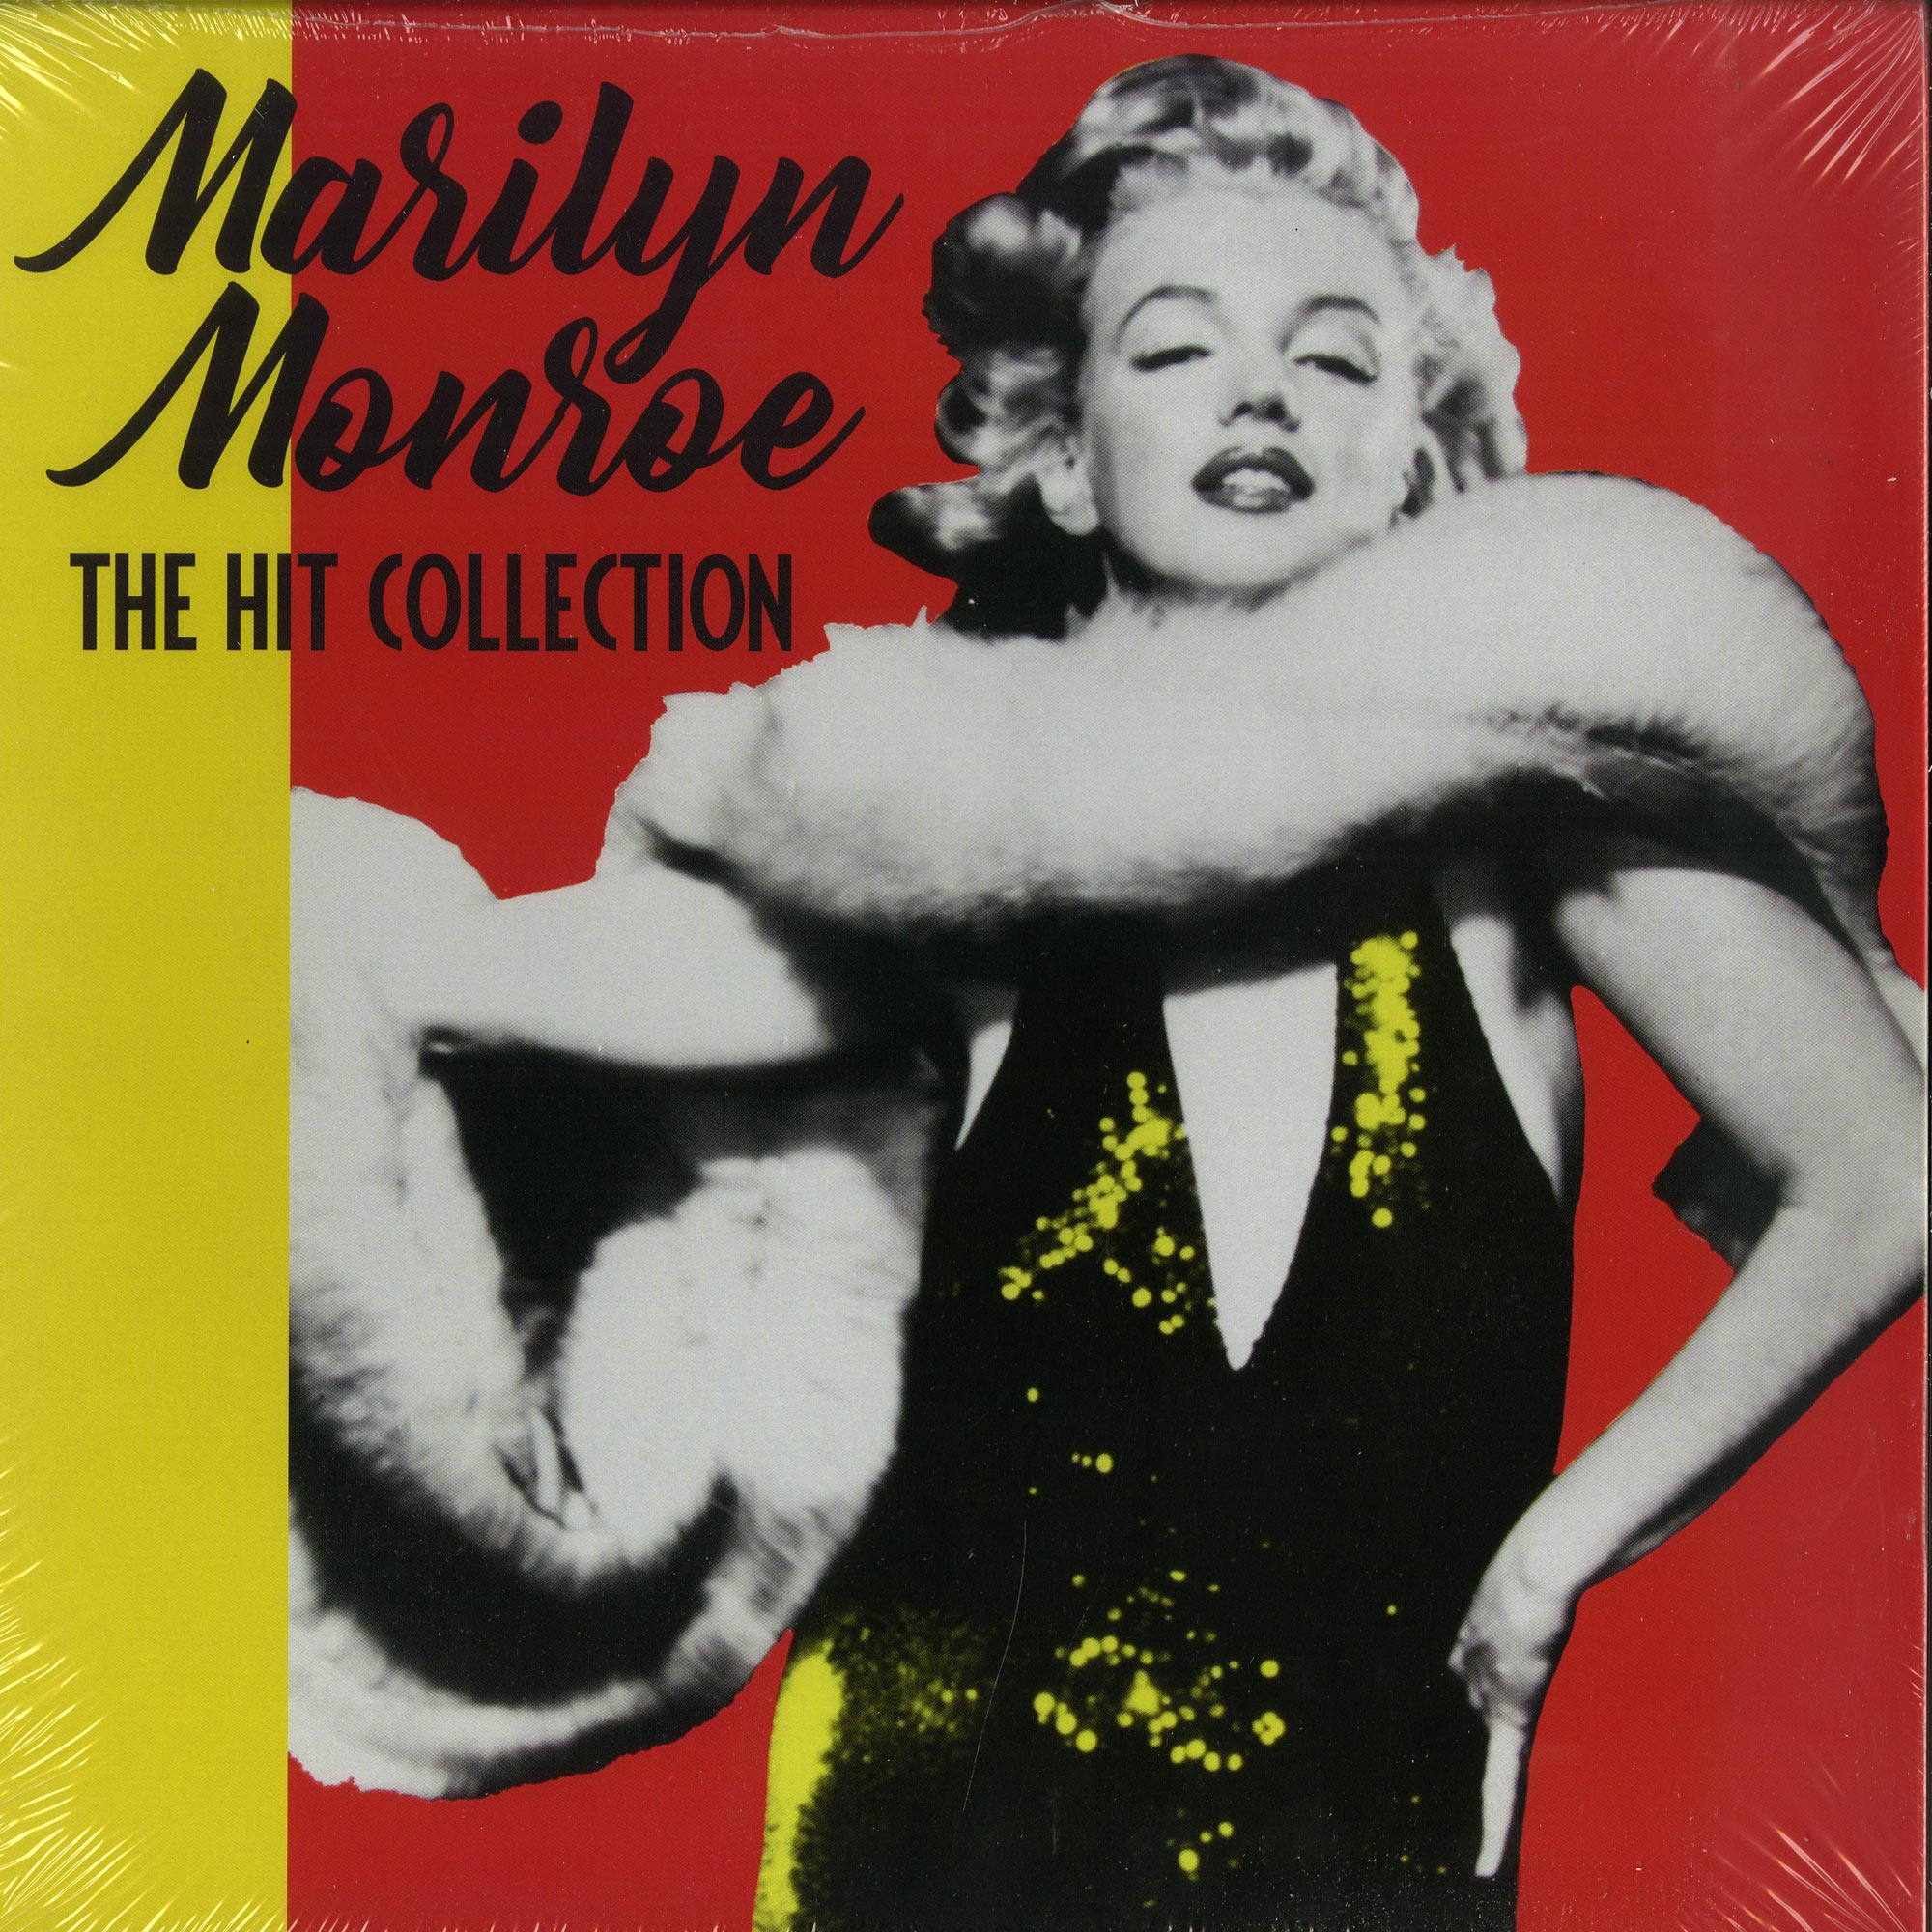 Marilyn Monroe - THE HIT COLLECTION